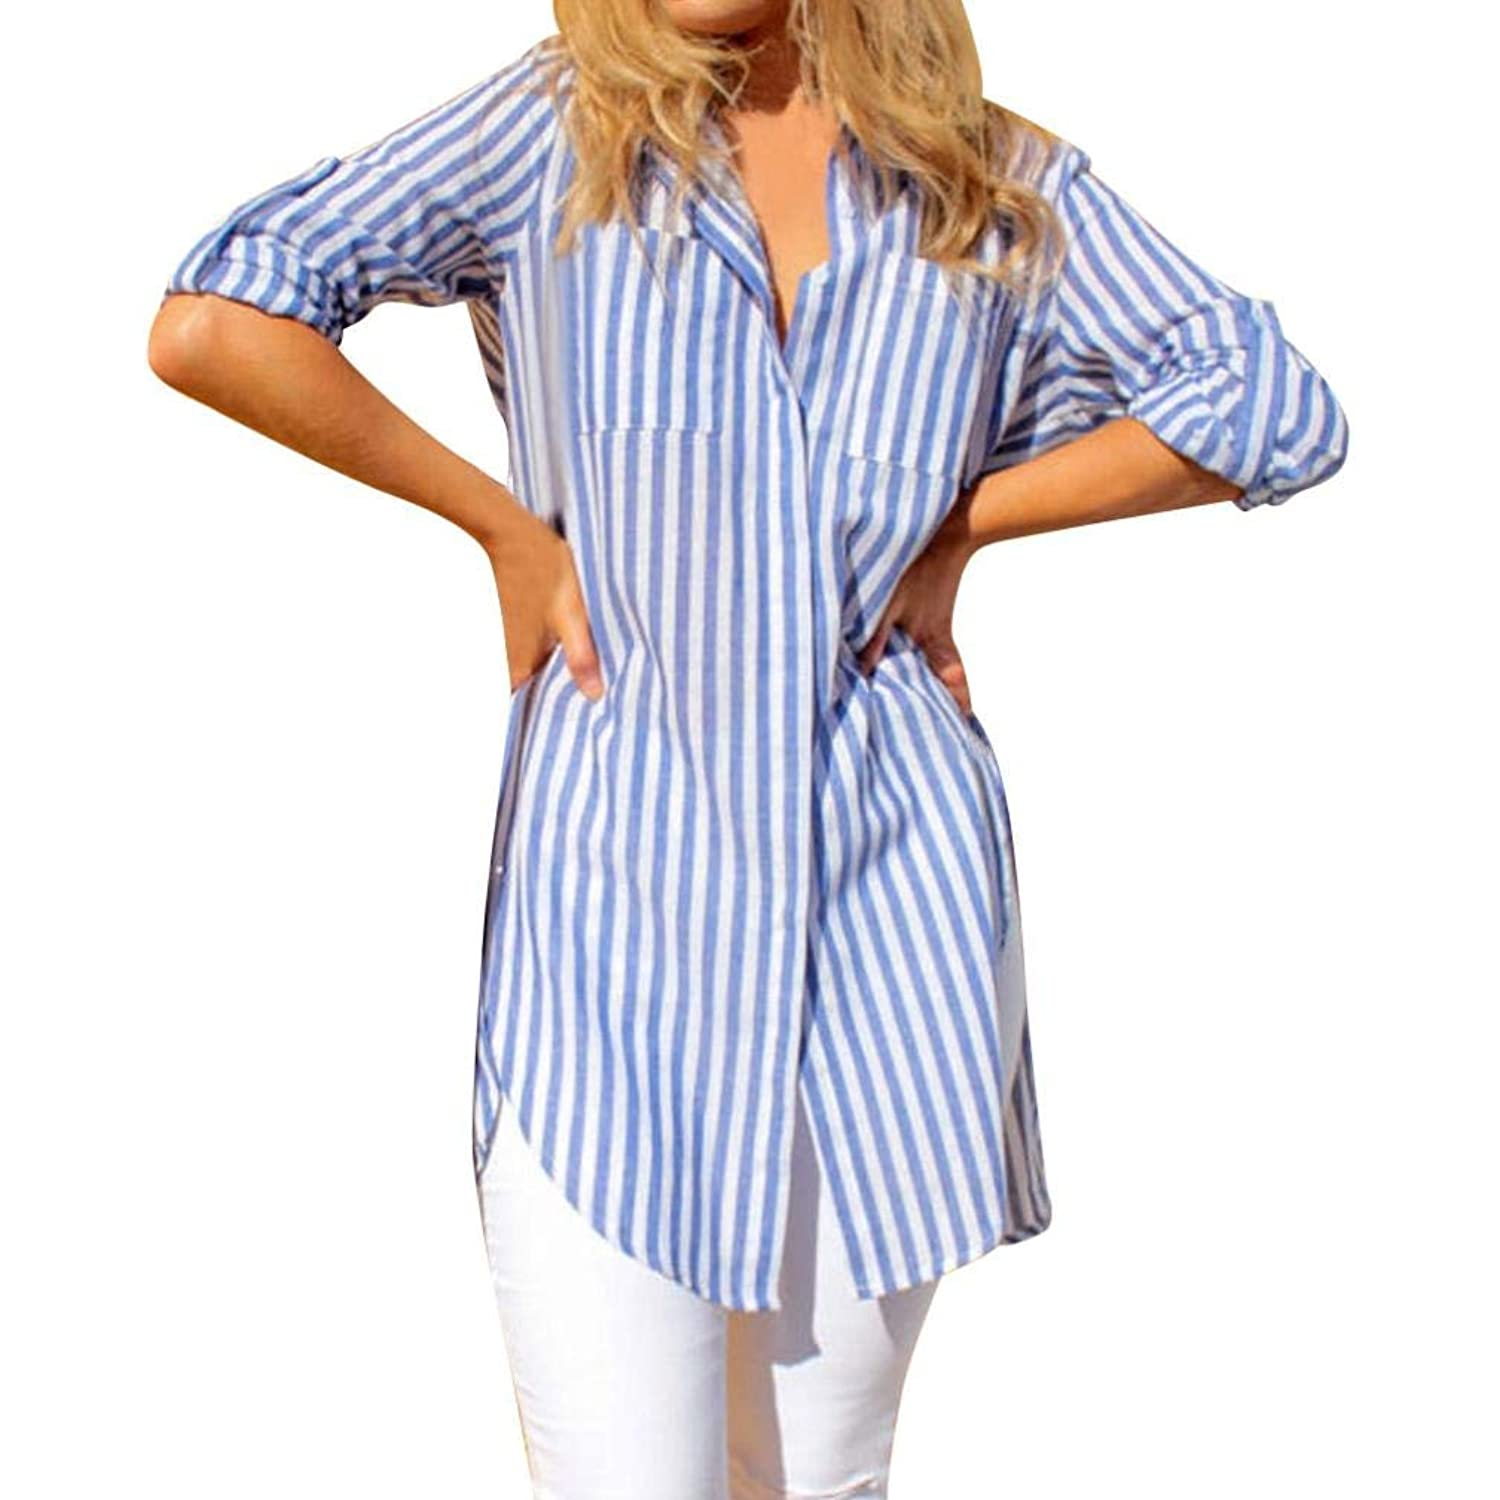 12b4d8a4e26 Top 10 wholesale 3 Button Long Sleeve Shirts - Chinabrands.com